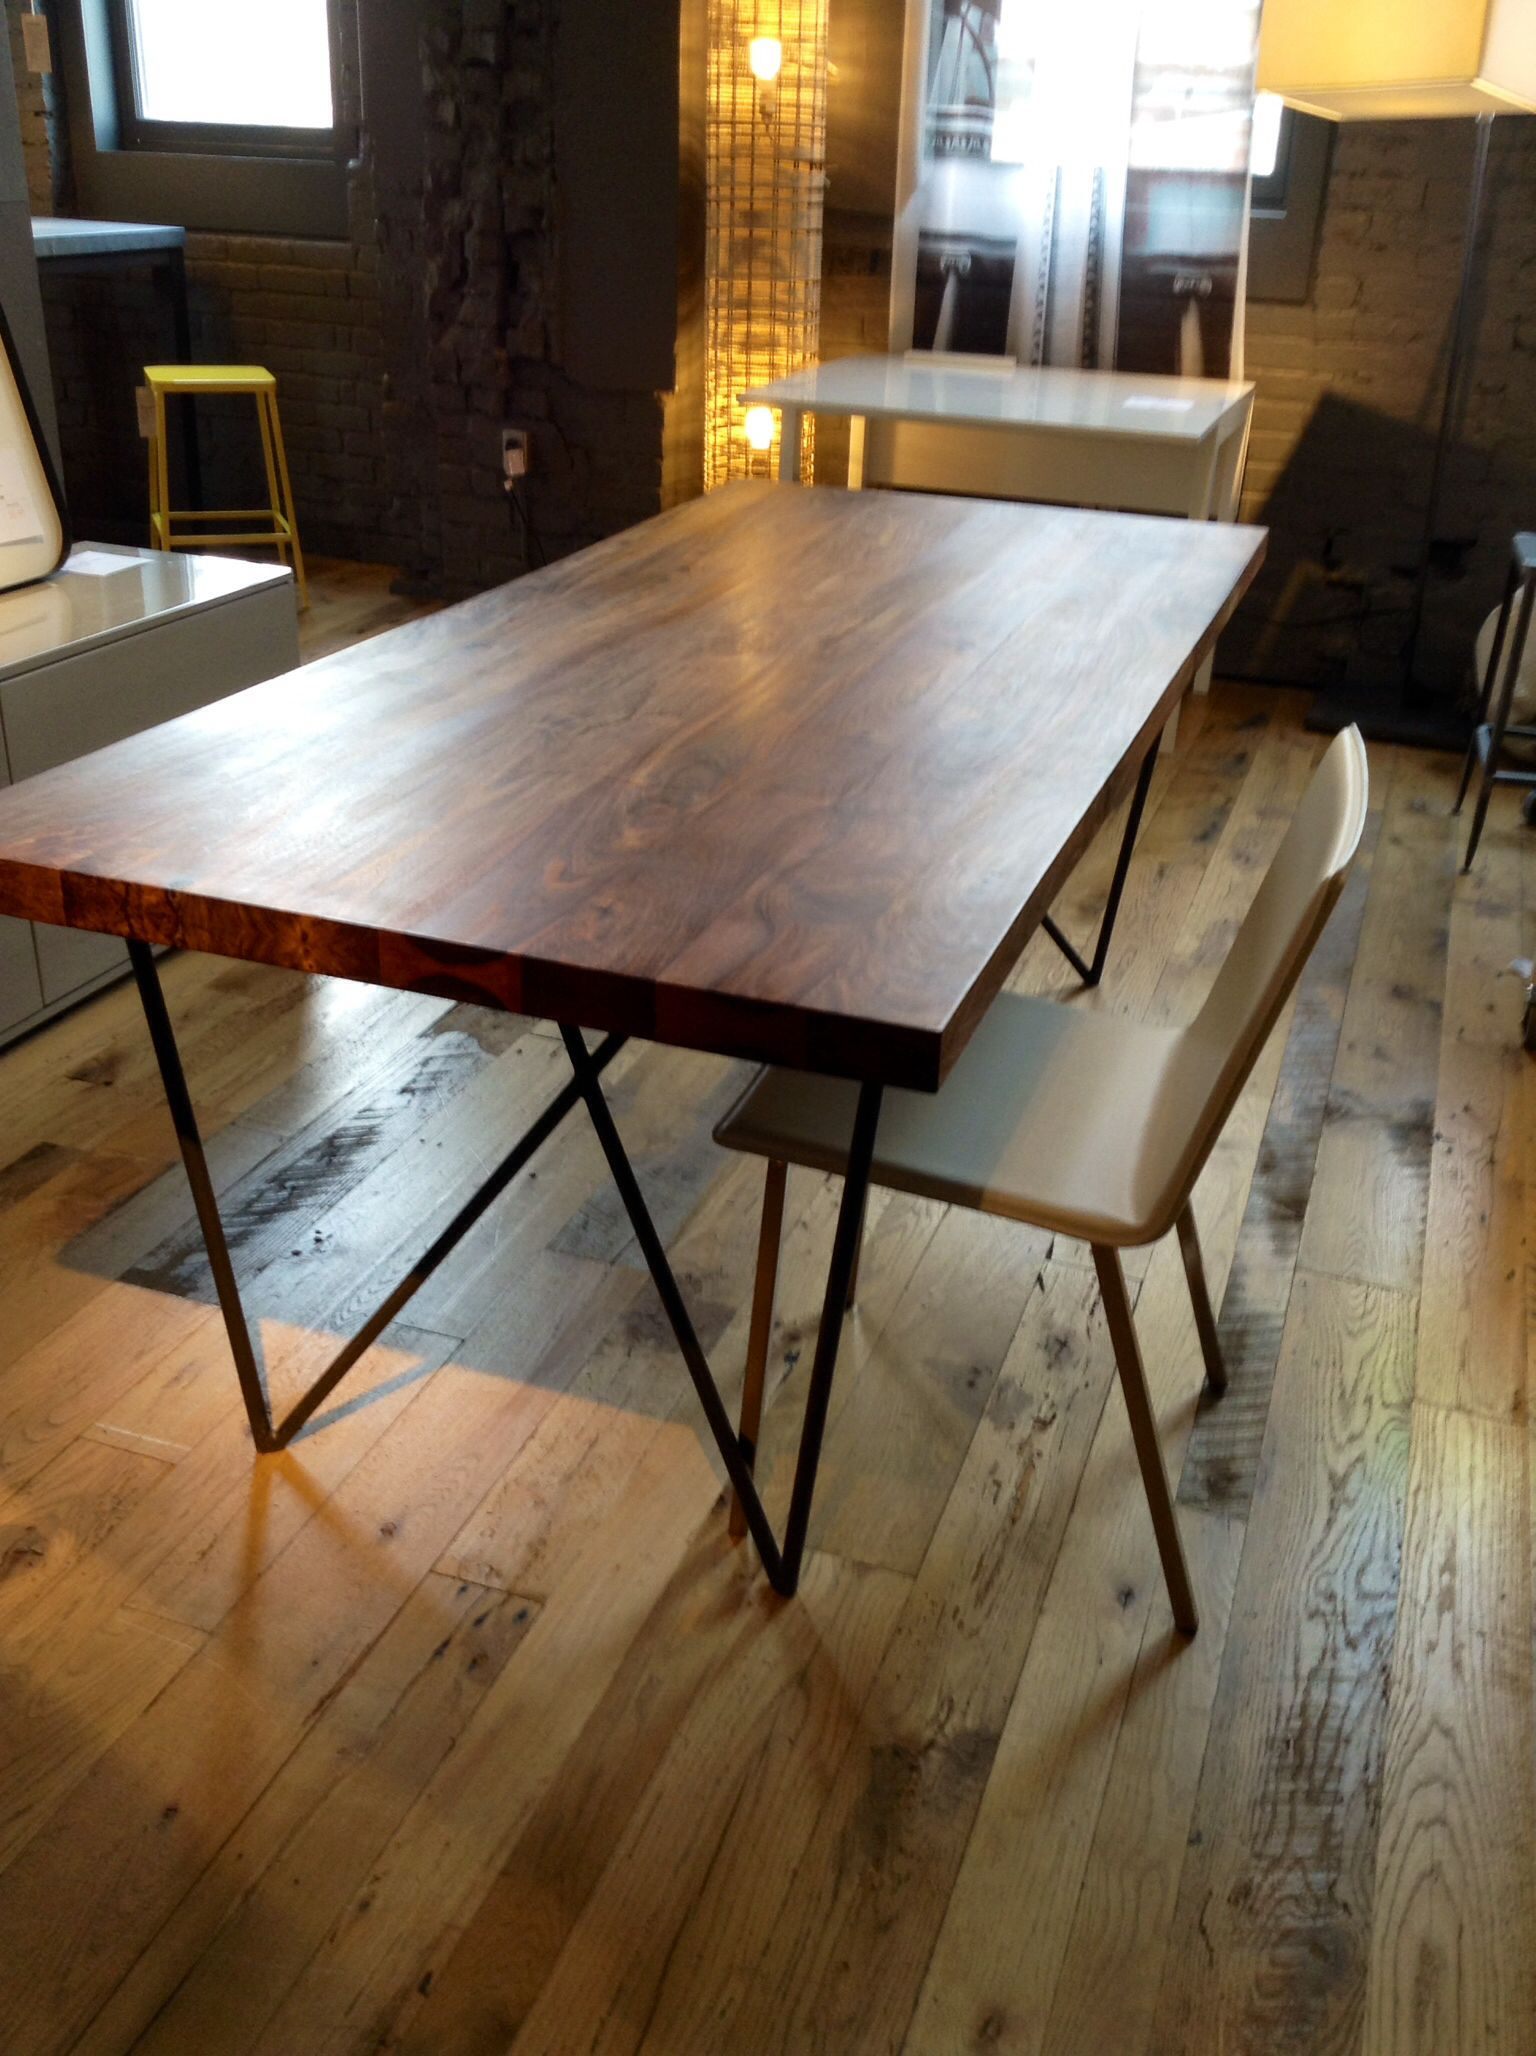 Just Purchased The Cb2 Dylan Dining Table, In Love With